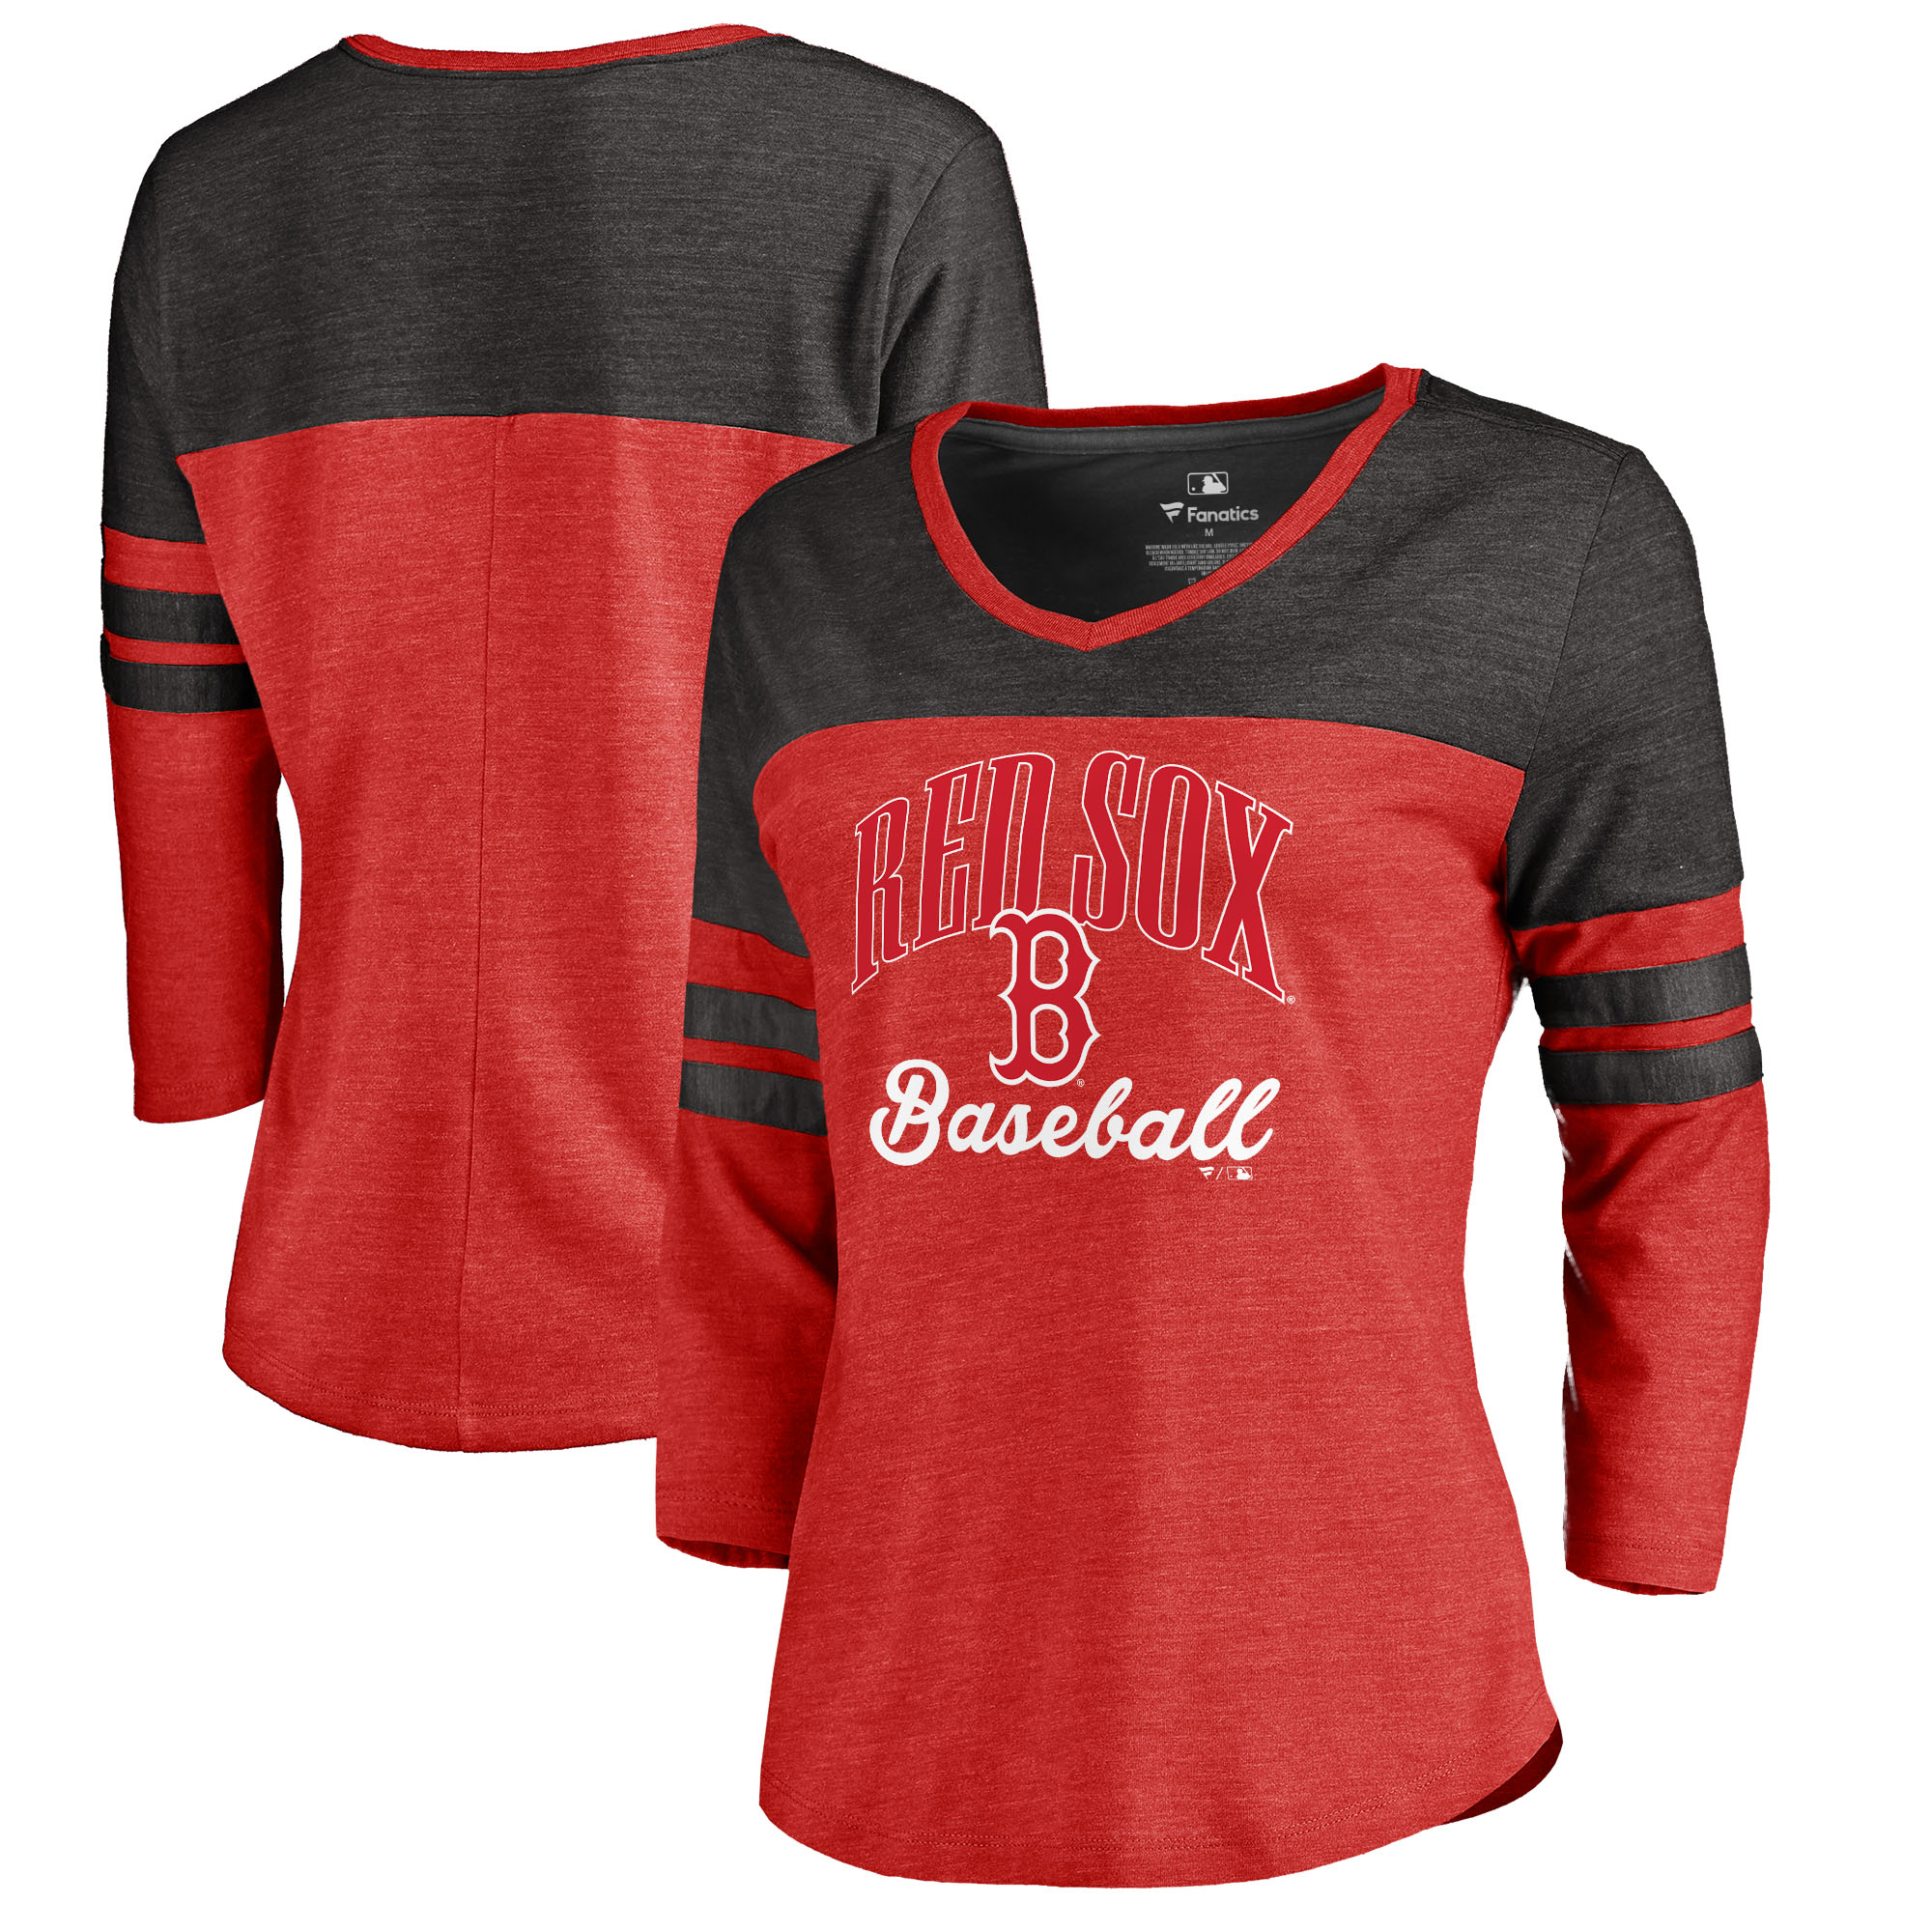 Boston Red Sox Fanatics Branded Women's Showtime Tri-Blend V-Neck 3/4-Sleeve T-Shirt - Red